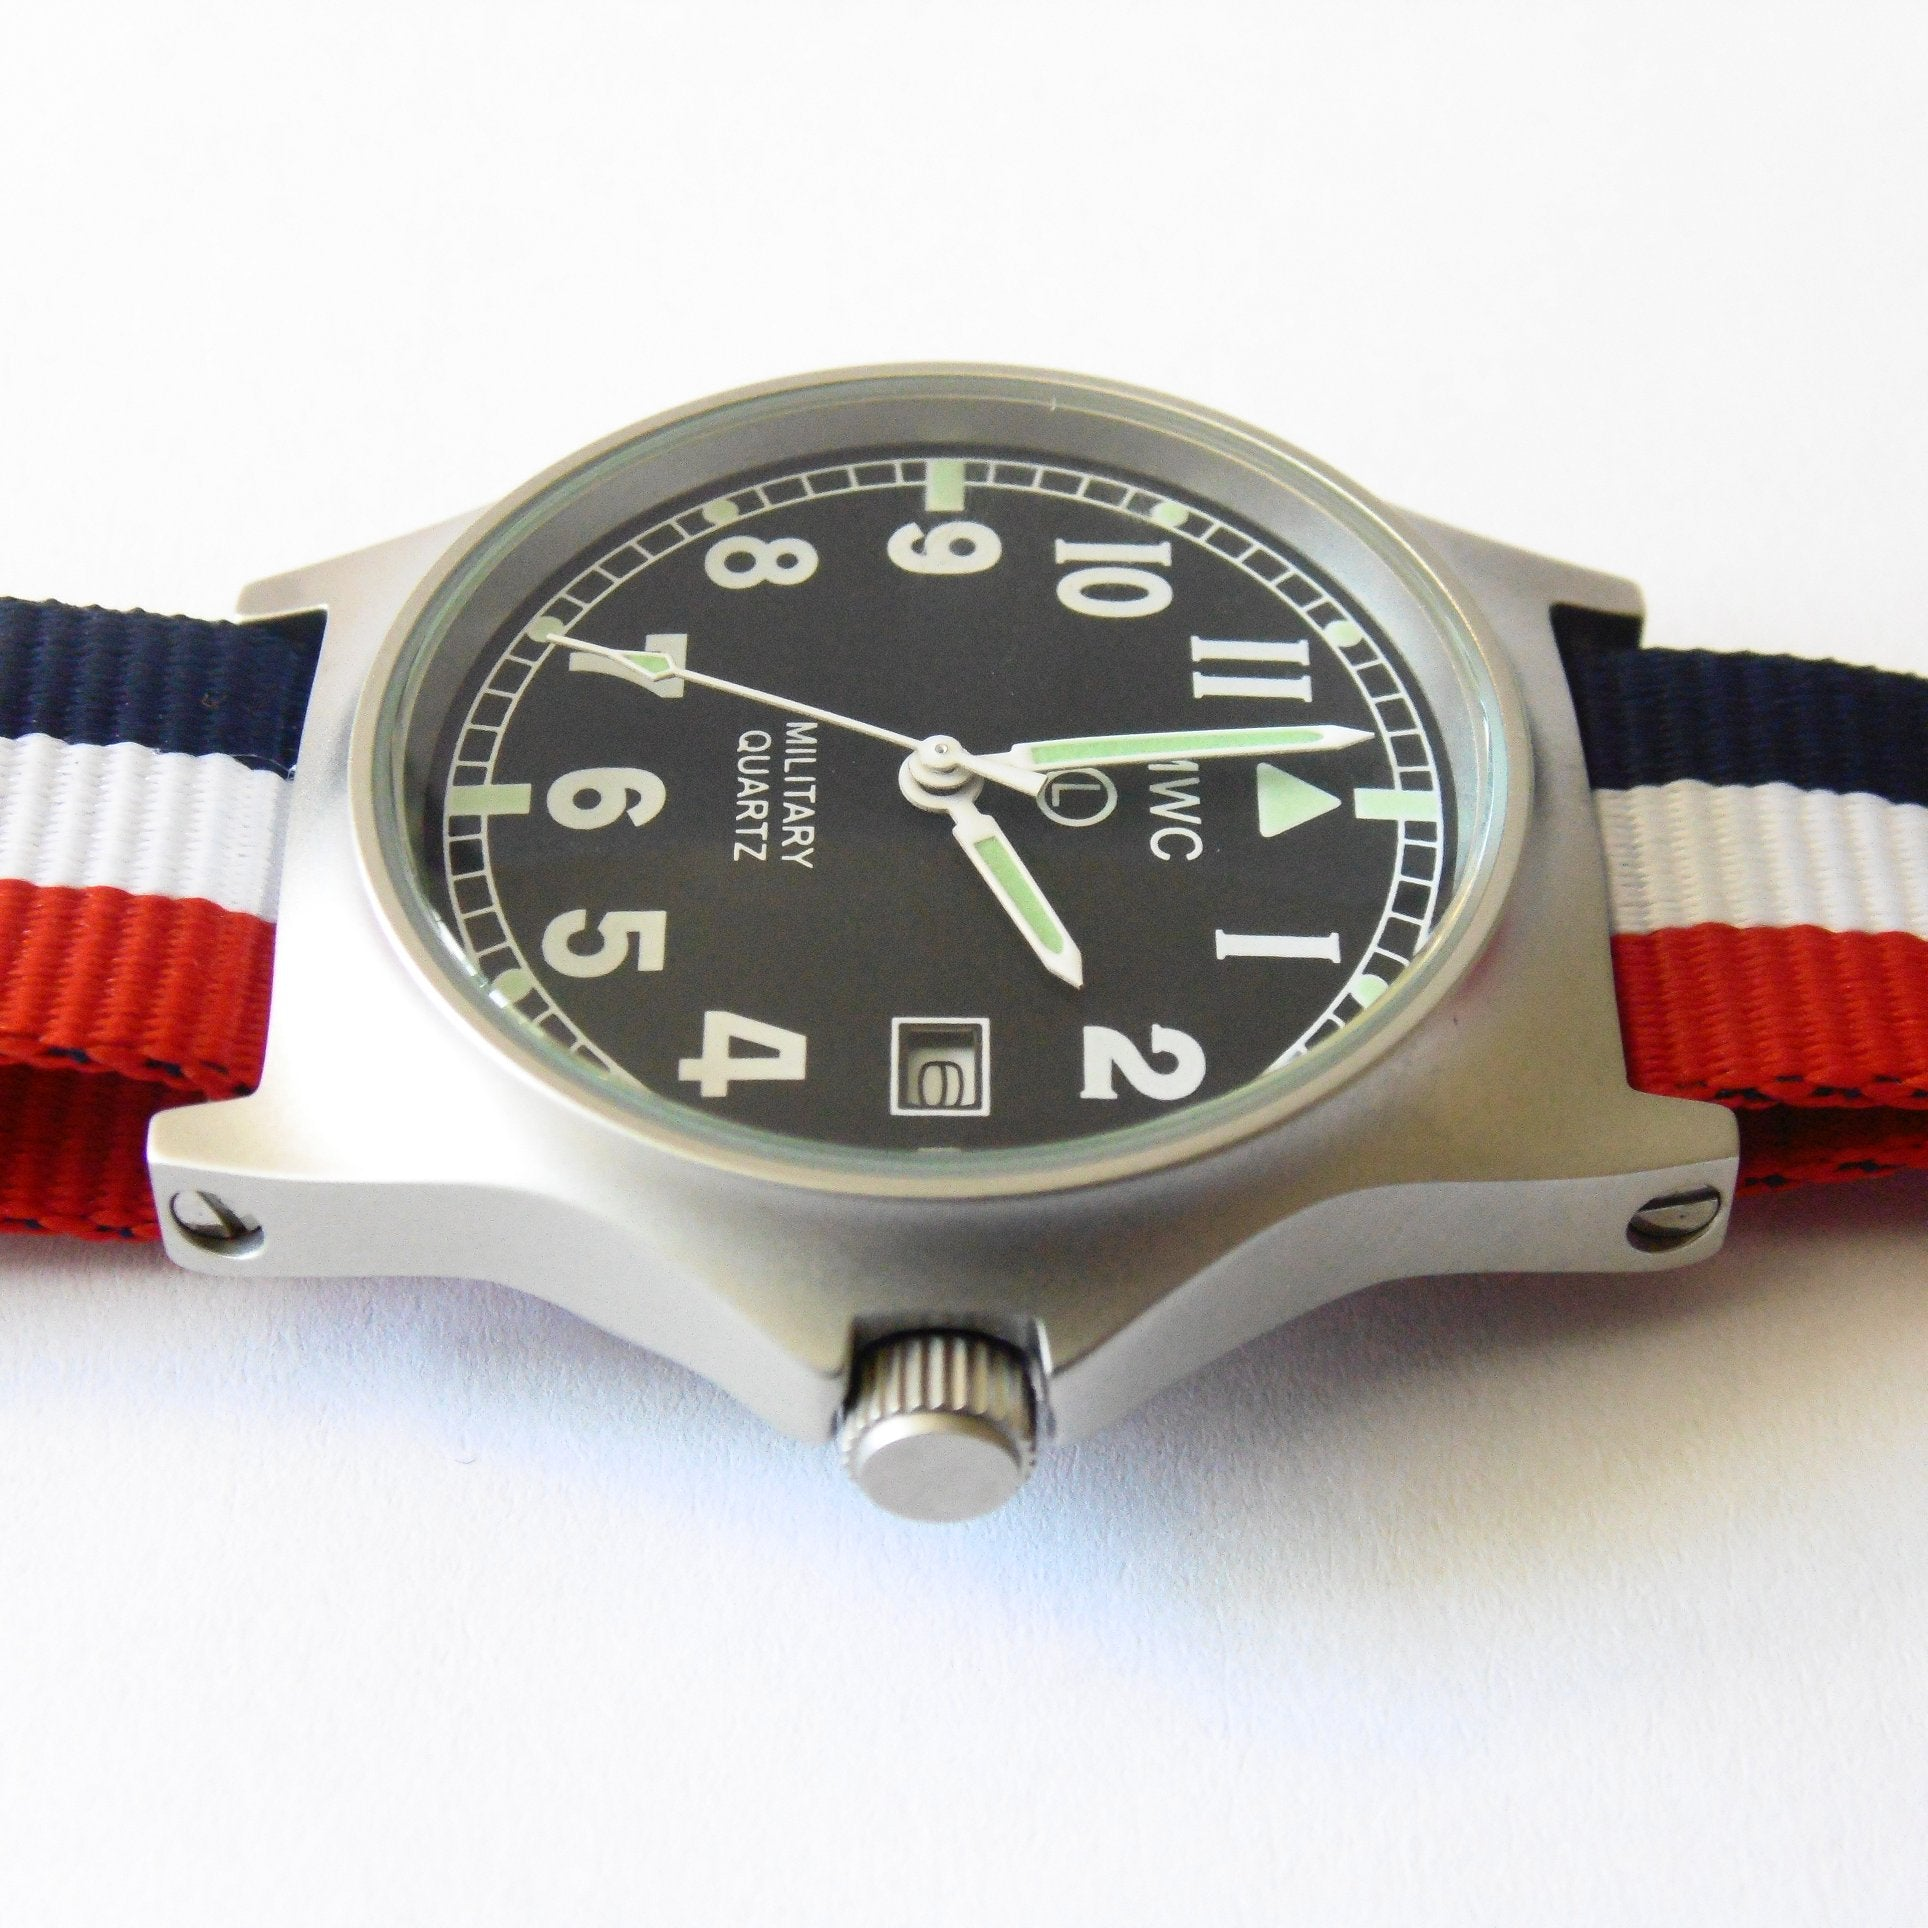 MWC G10 LM Military Watch (French Strap) - Watchfinder General - UK suppliers of Russian Vostok Parnis Watches MWC G10  - 3